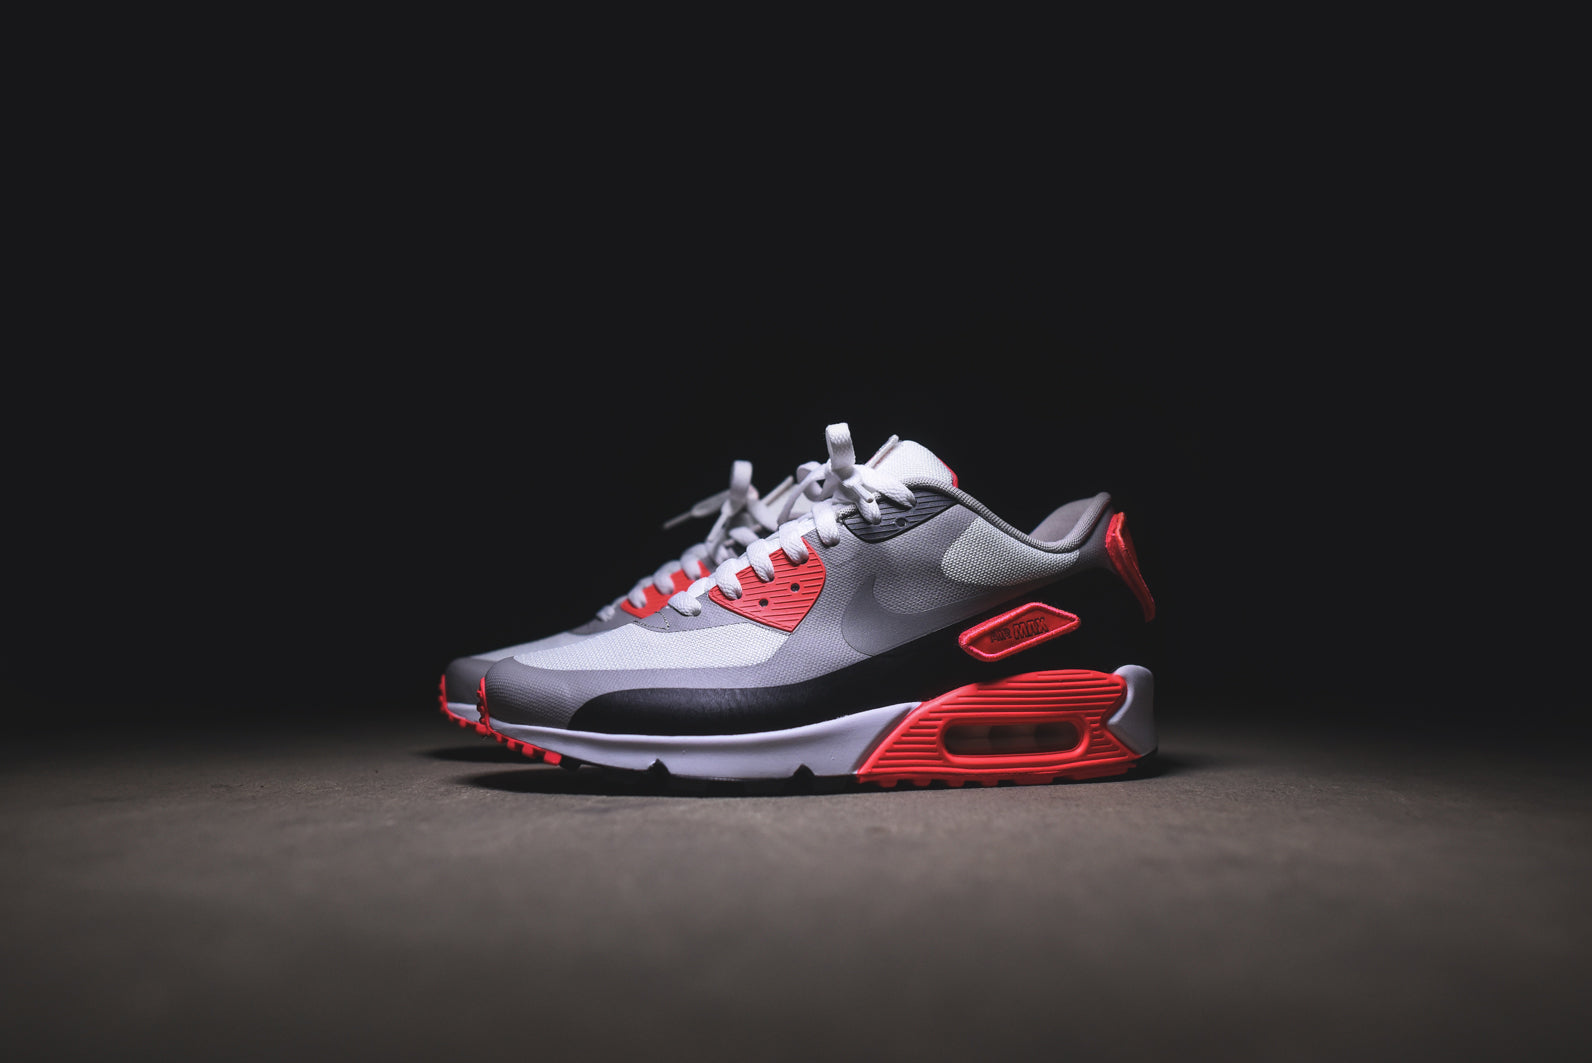 Nike Air Max 90 V SP Patch Infrared - Kith